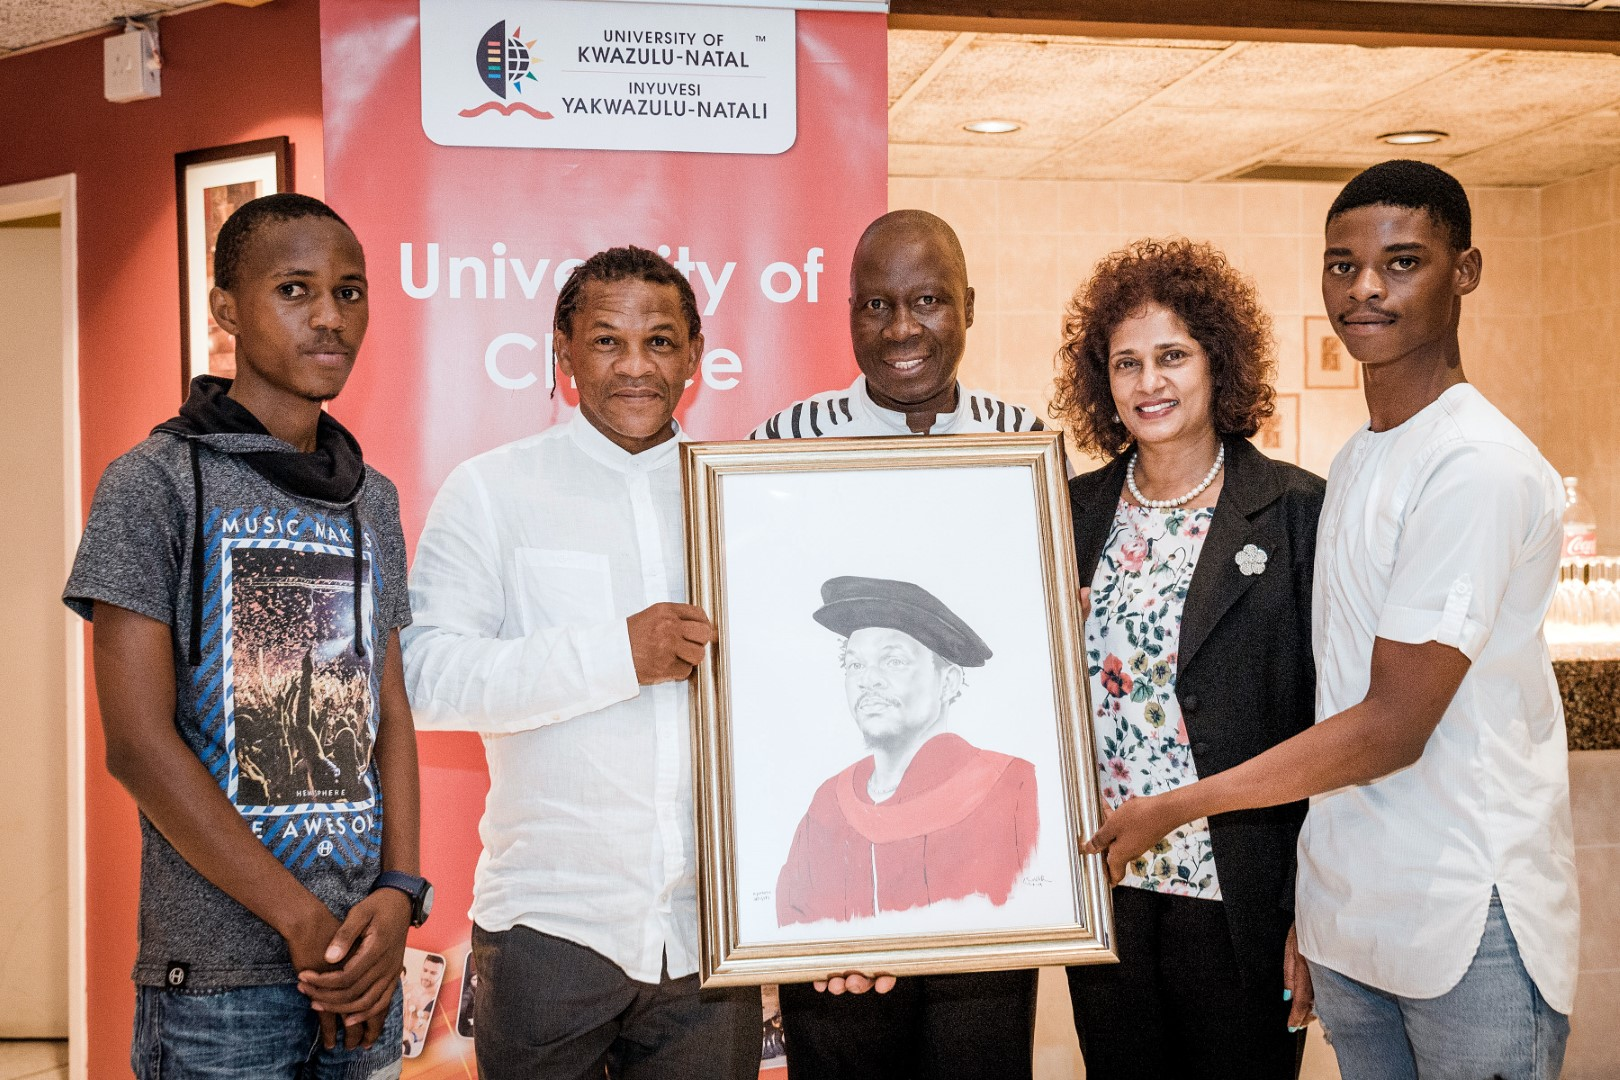 Students from UKZN hand over a painting to Honorary Doctorate Dr Willie Bester